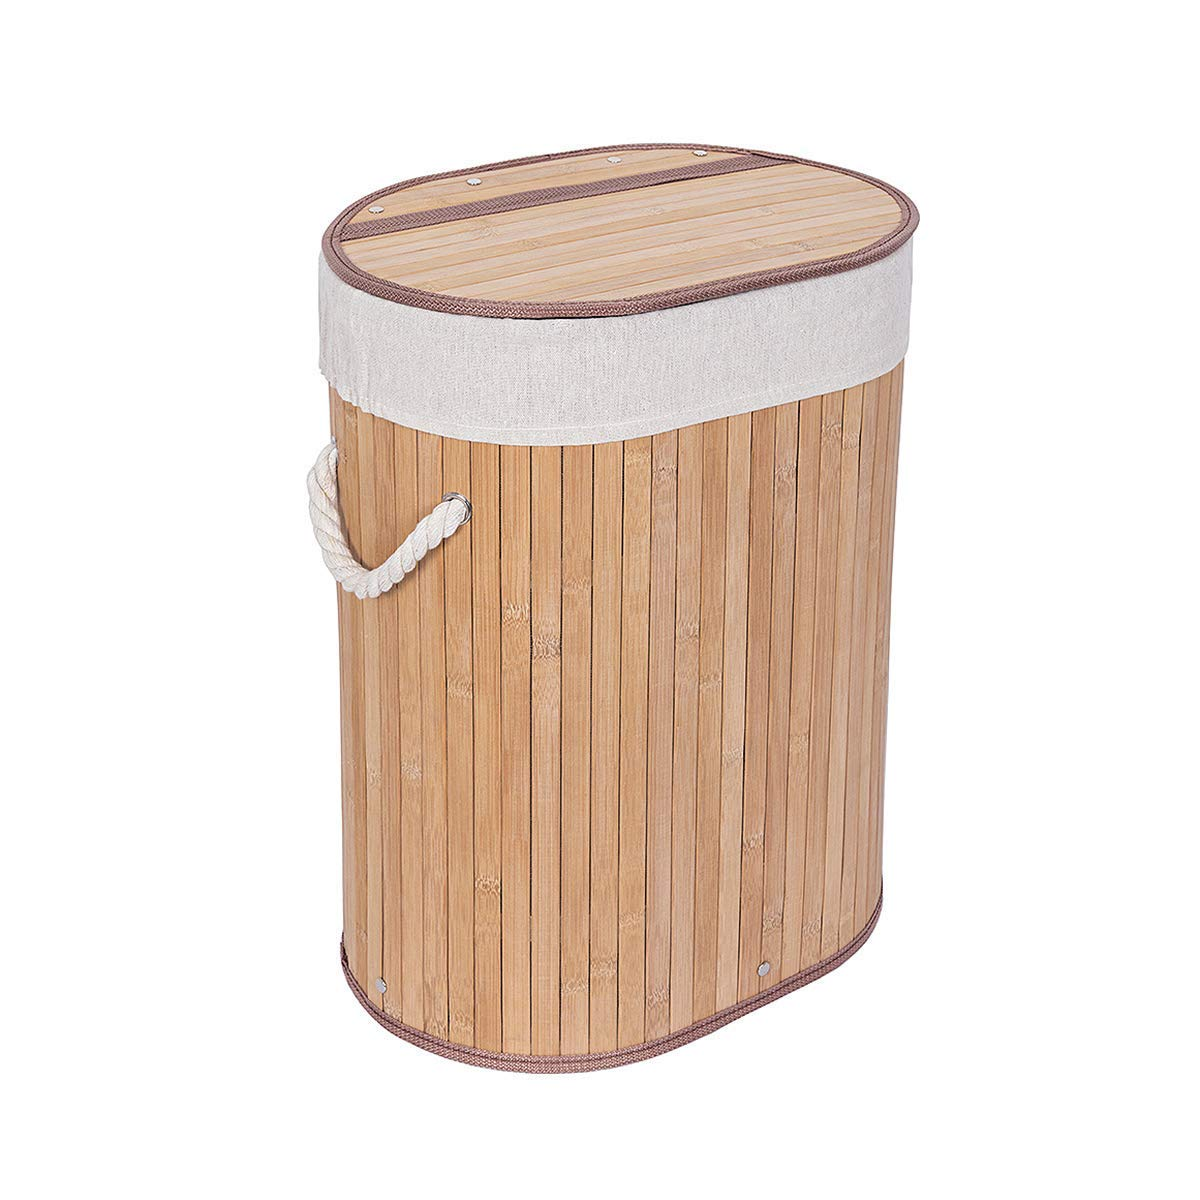 WOWLIVE Bamboo Laundry Hamper Lid Laundry Basket Rectangular Collapsible Organizer Dirty Clothes Washing Bin (42L)